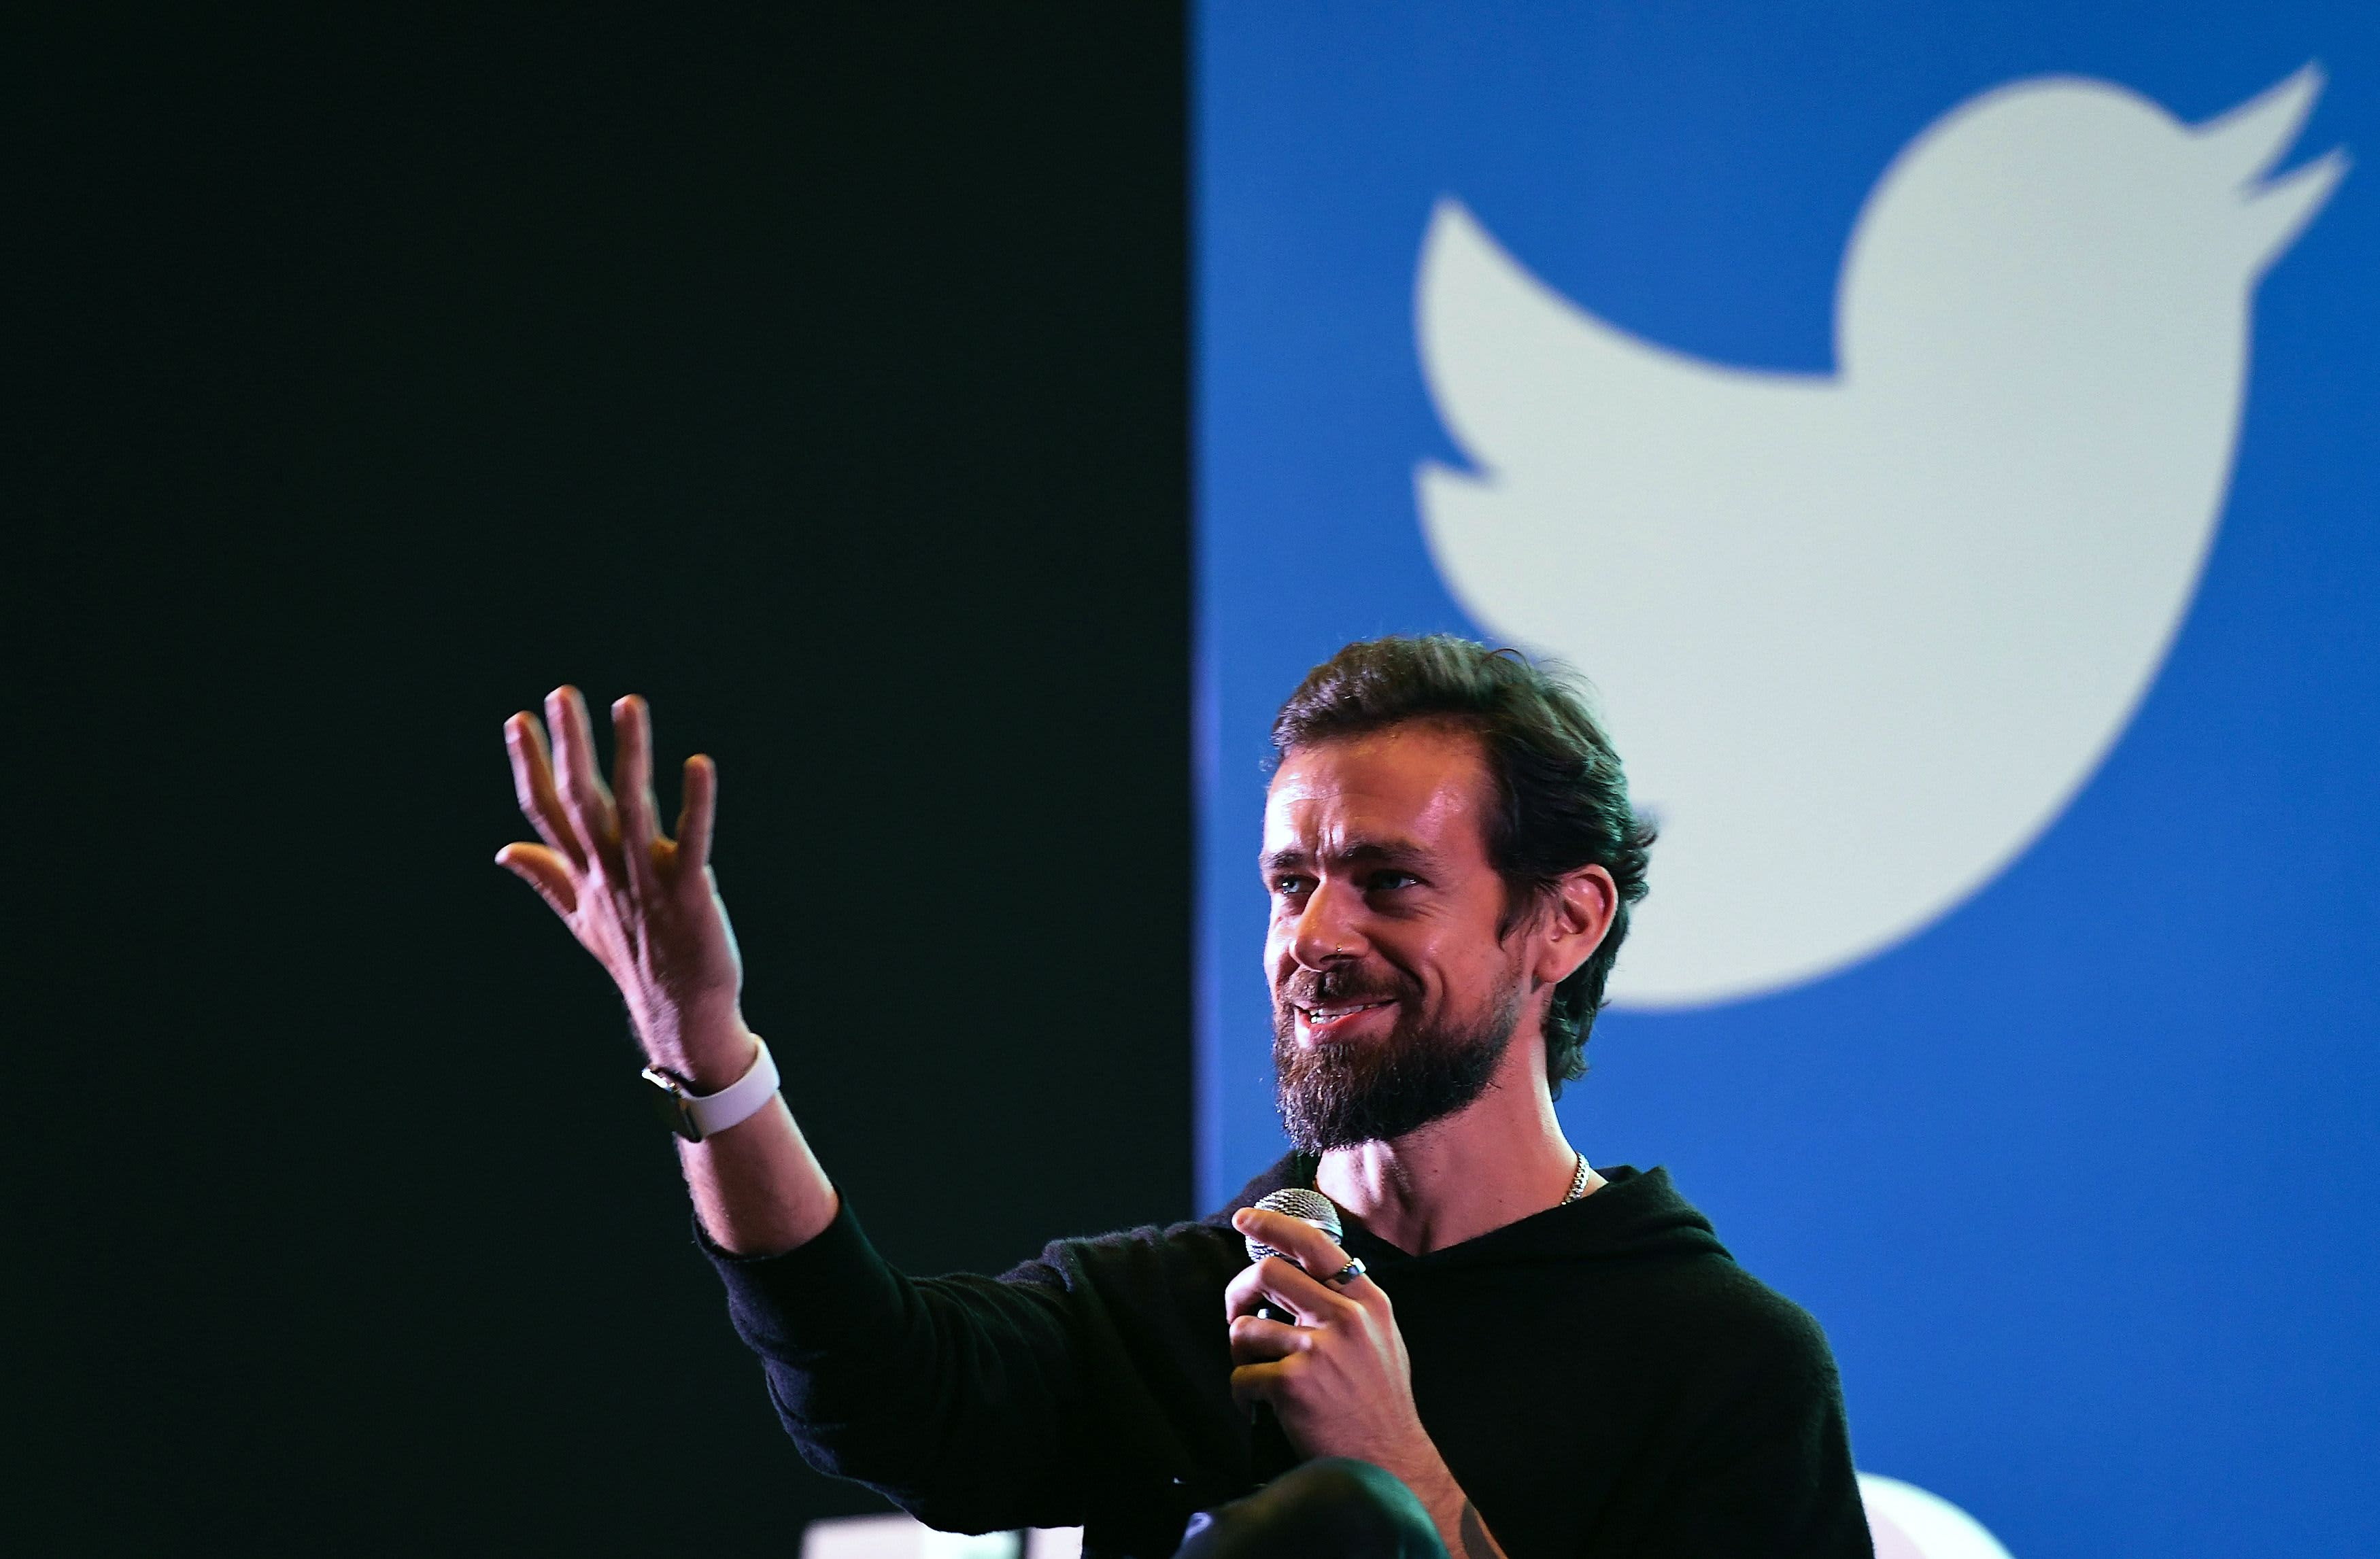 Twitter is finally embracing change, and it seems to be working